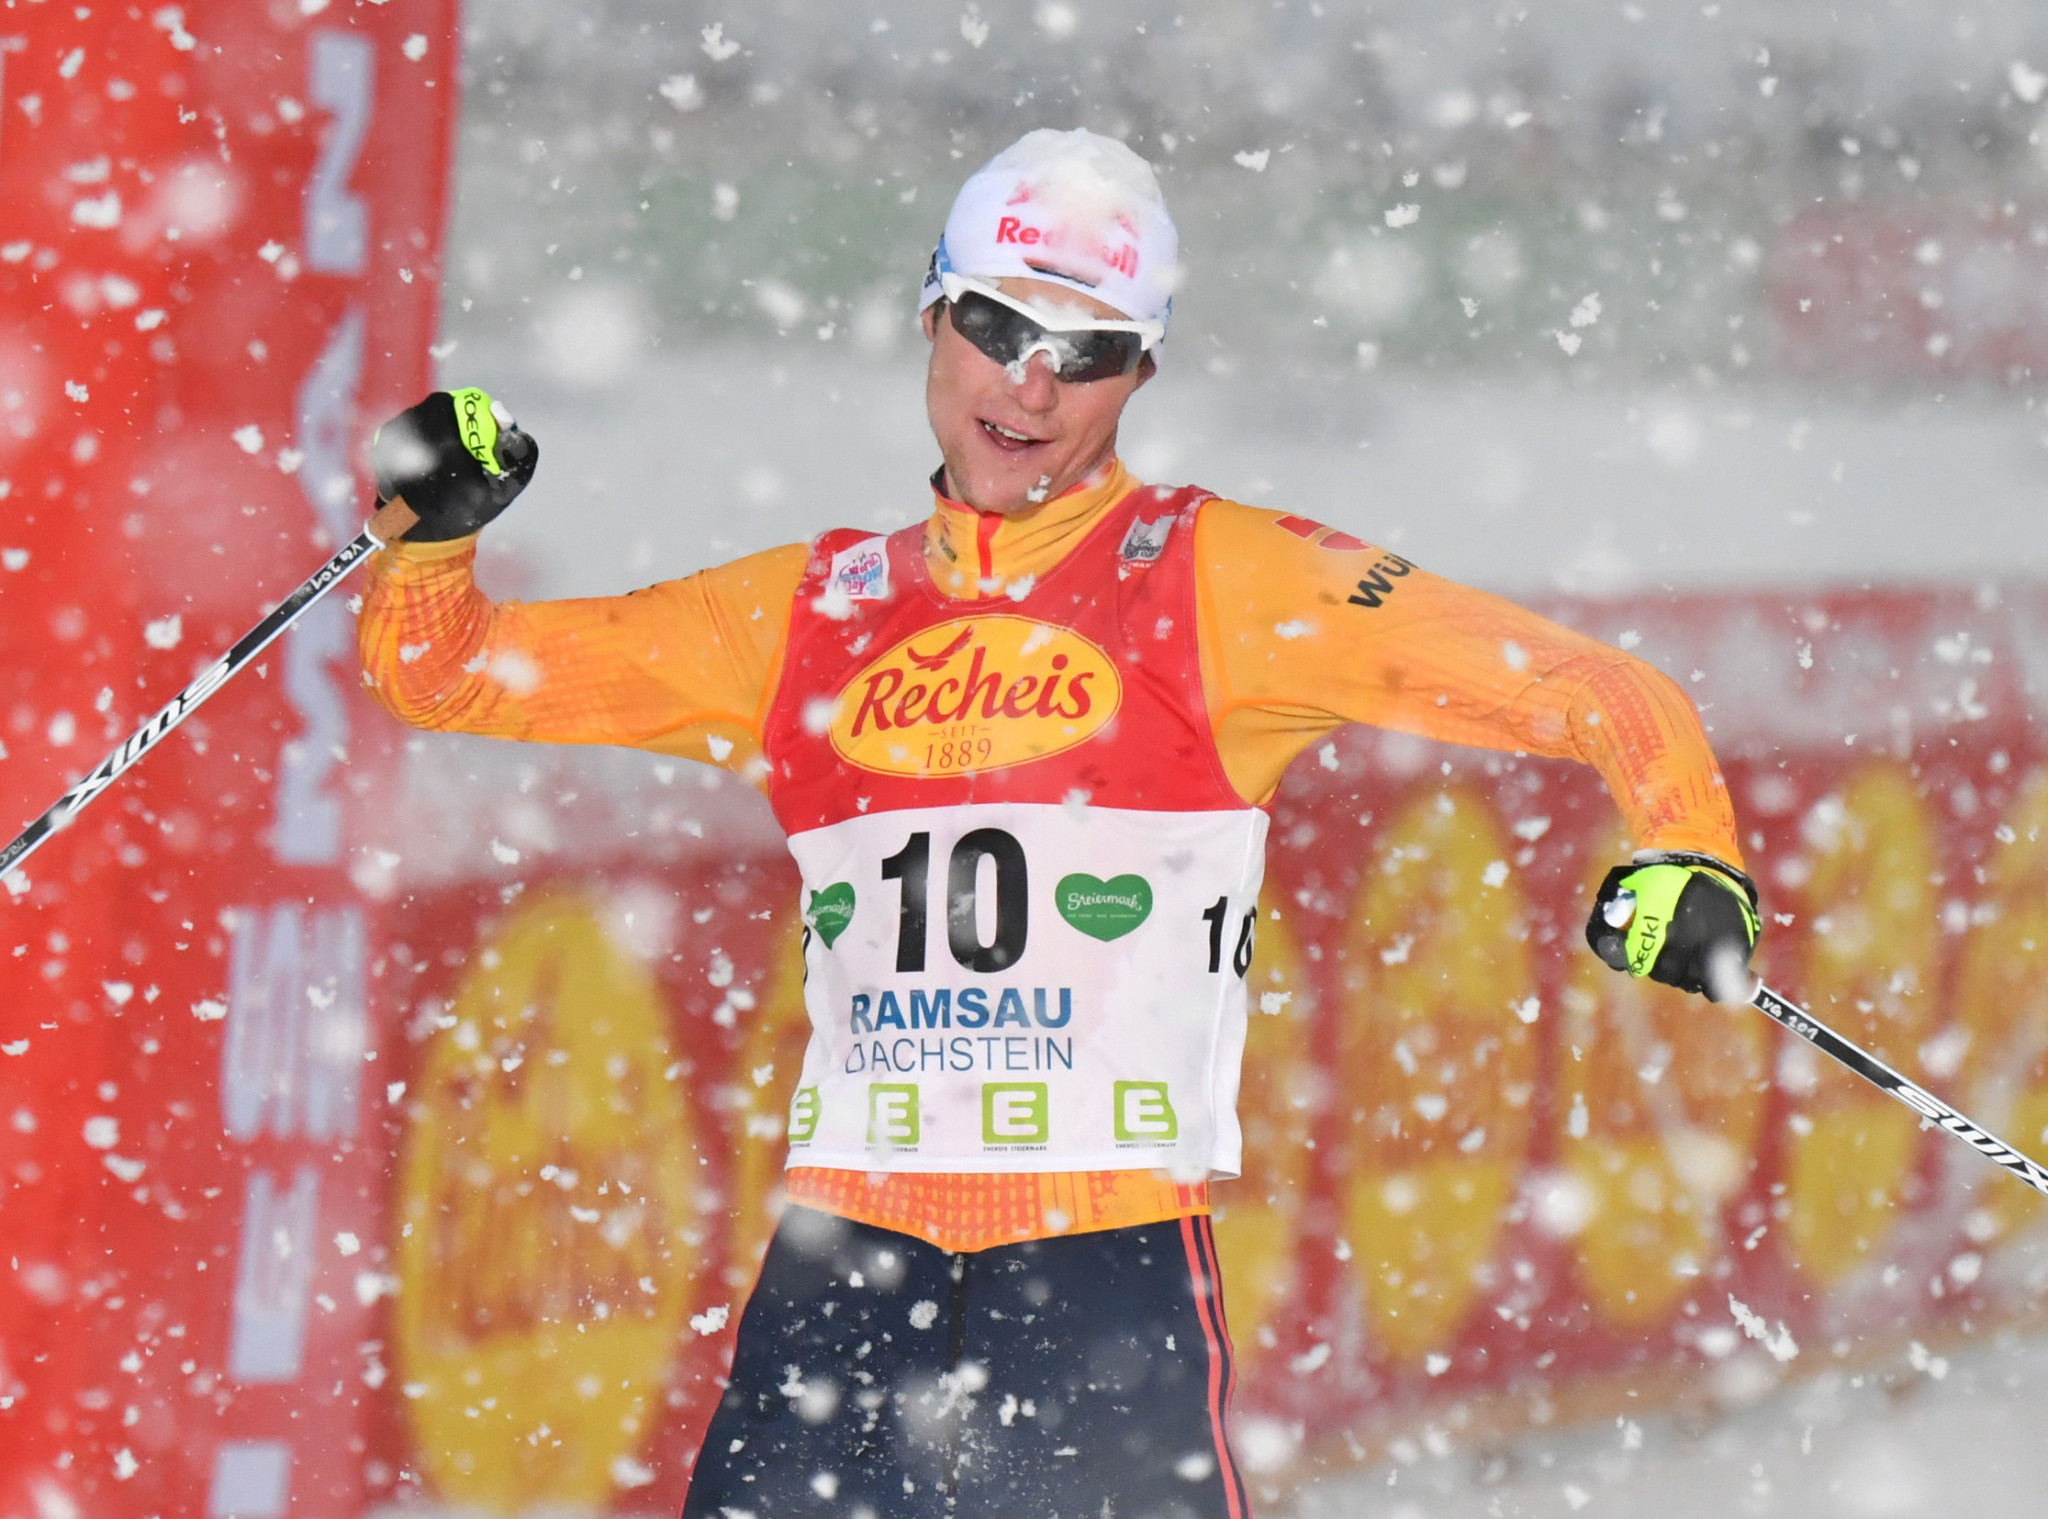 Vinzenz Geiger of Germany was the winner of the first race at the FIS Nordic Combined World Cup event in Ramsau am Dachstein - ending Norway's Jarl Magnus Riiber a sixth consecutive victory ©Getty Images